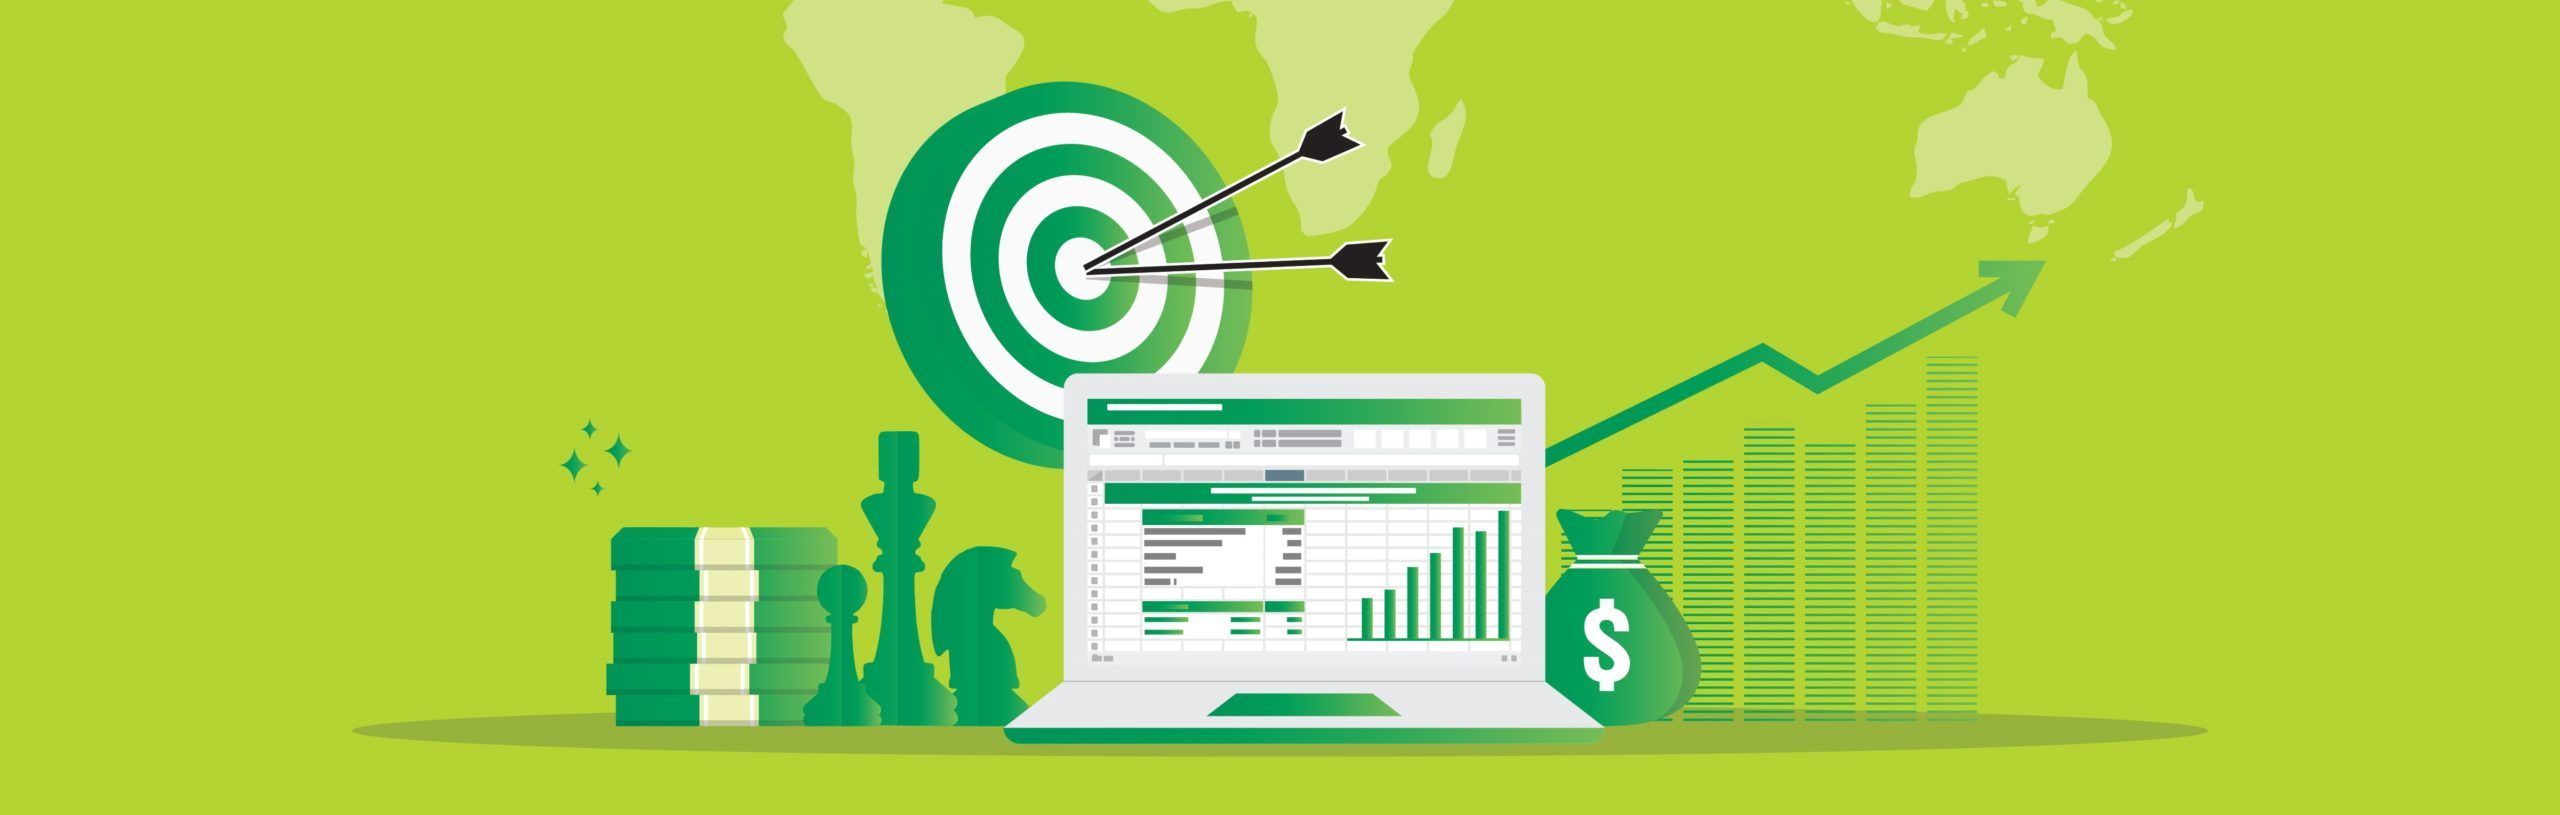 marketing strategy and business analysis audit with charts. Return on investment ROI concept